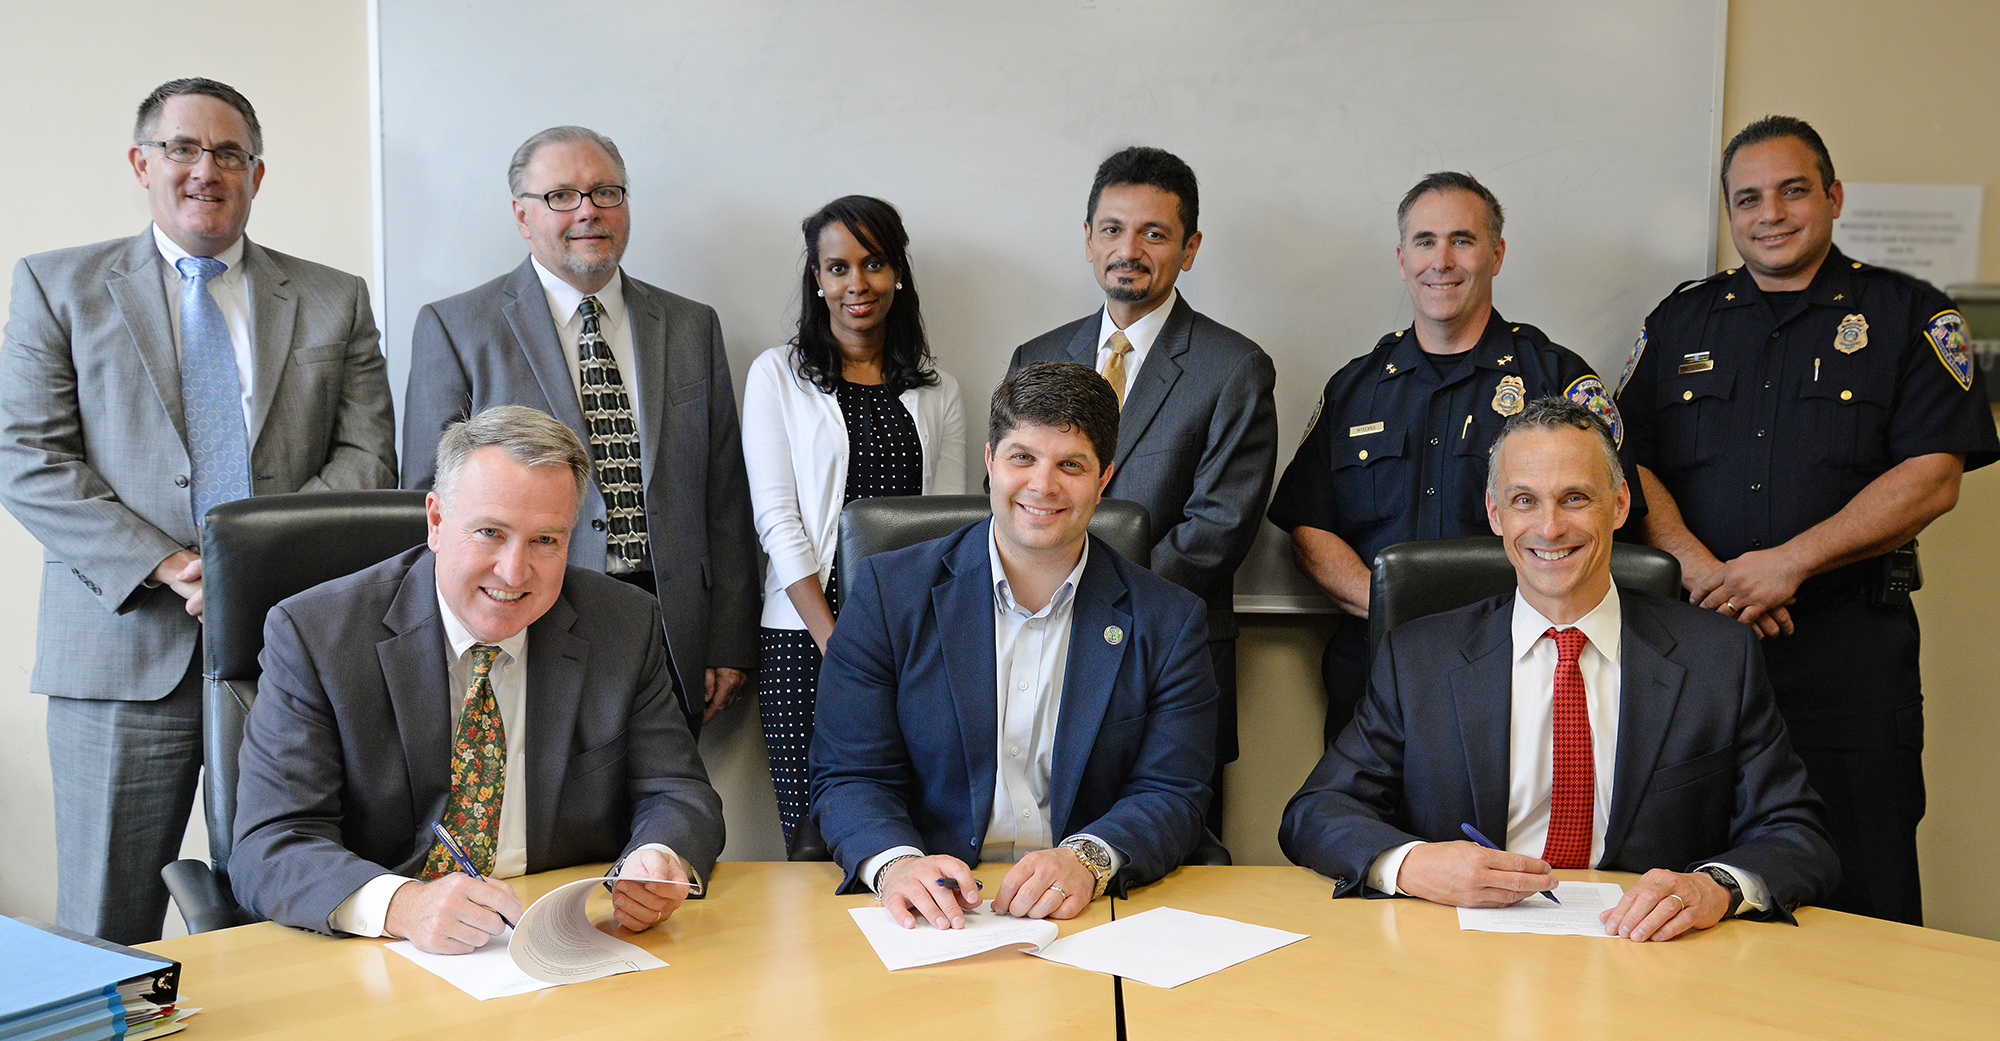 Participants included: Front row, from left, Peter McShane; Mayor Dan Drew and President Michael Roth. Back row, from left, General Counsel and Secretary of the University David Winakor; Director of Public Safety Scott Rodhe; Therapist/Sexual Assault Resource Coordinator Alysha Warren; Vice President for Equity and Inclusion/Title IX Officer Antonio Farias; Middletown Police Chief William McKenna and Middletown Police Deputy Chief Michael Timbro.